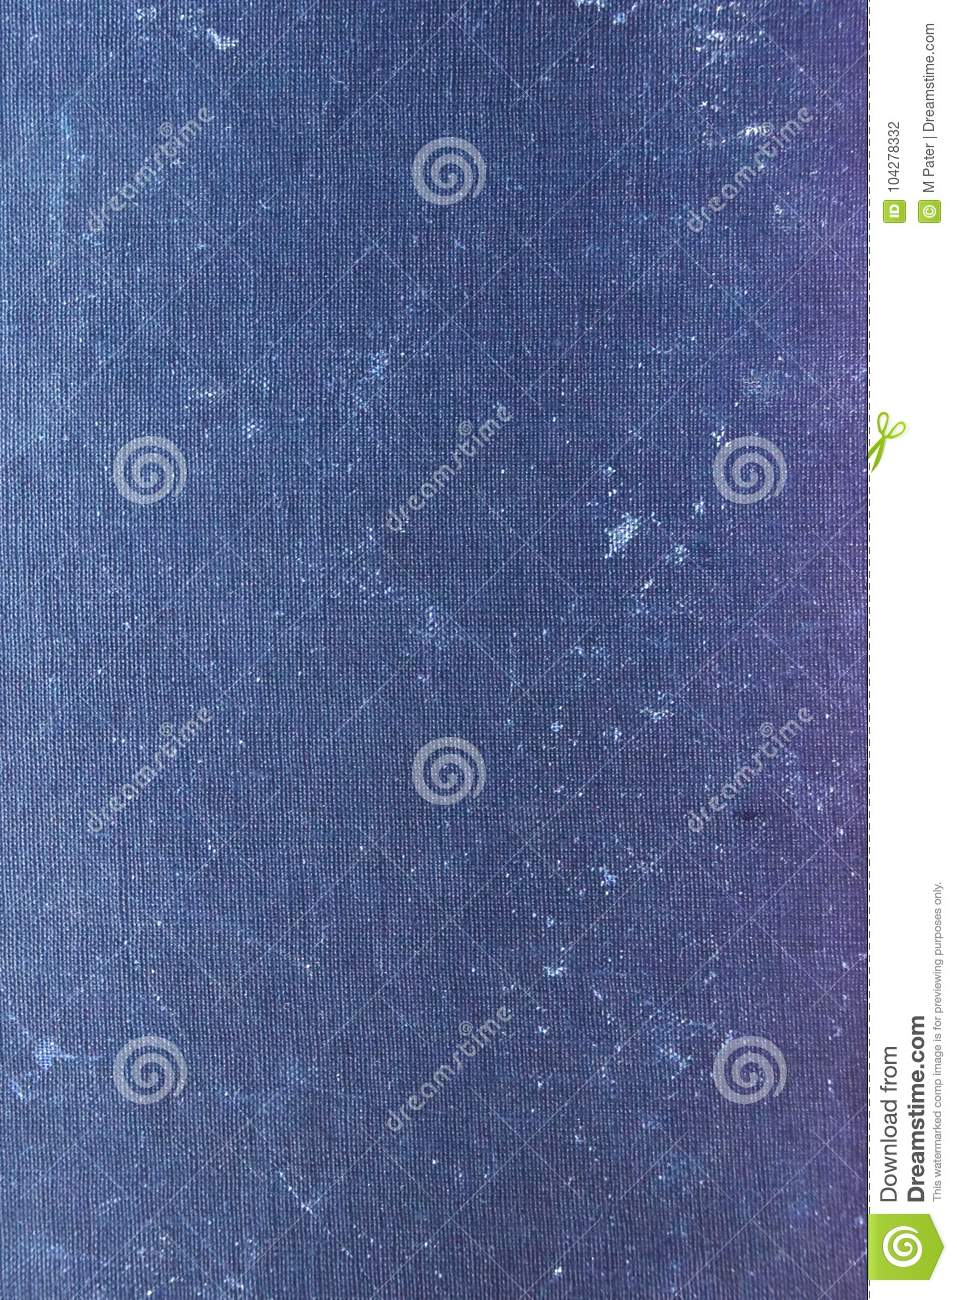 Grunge Book Cover Texture : Old book cover texture blue colored stock photo image of